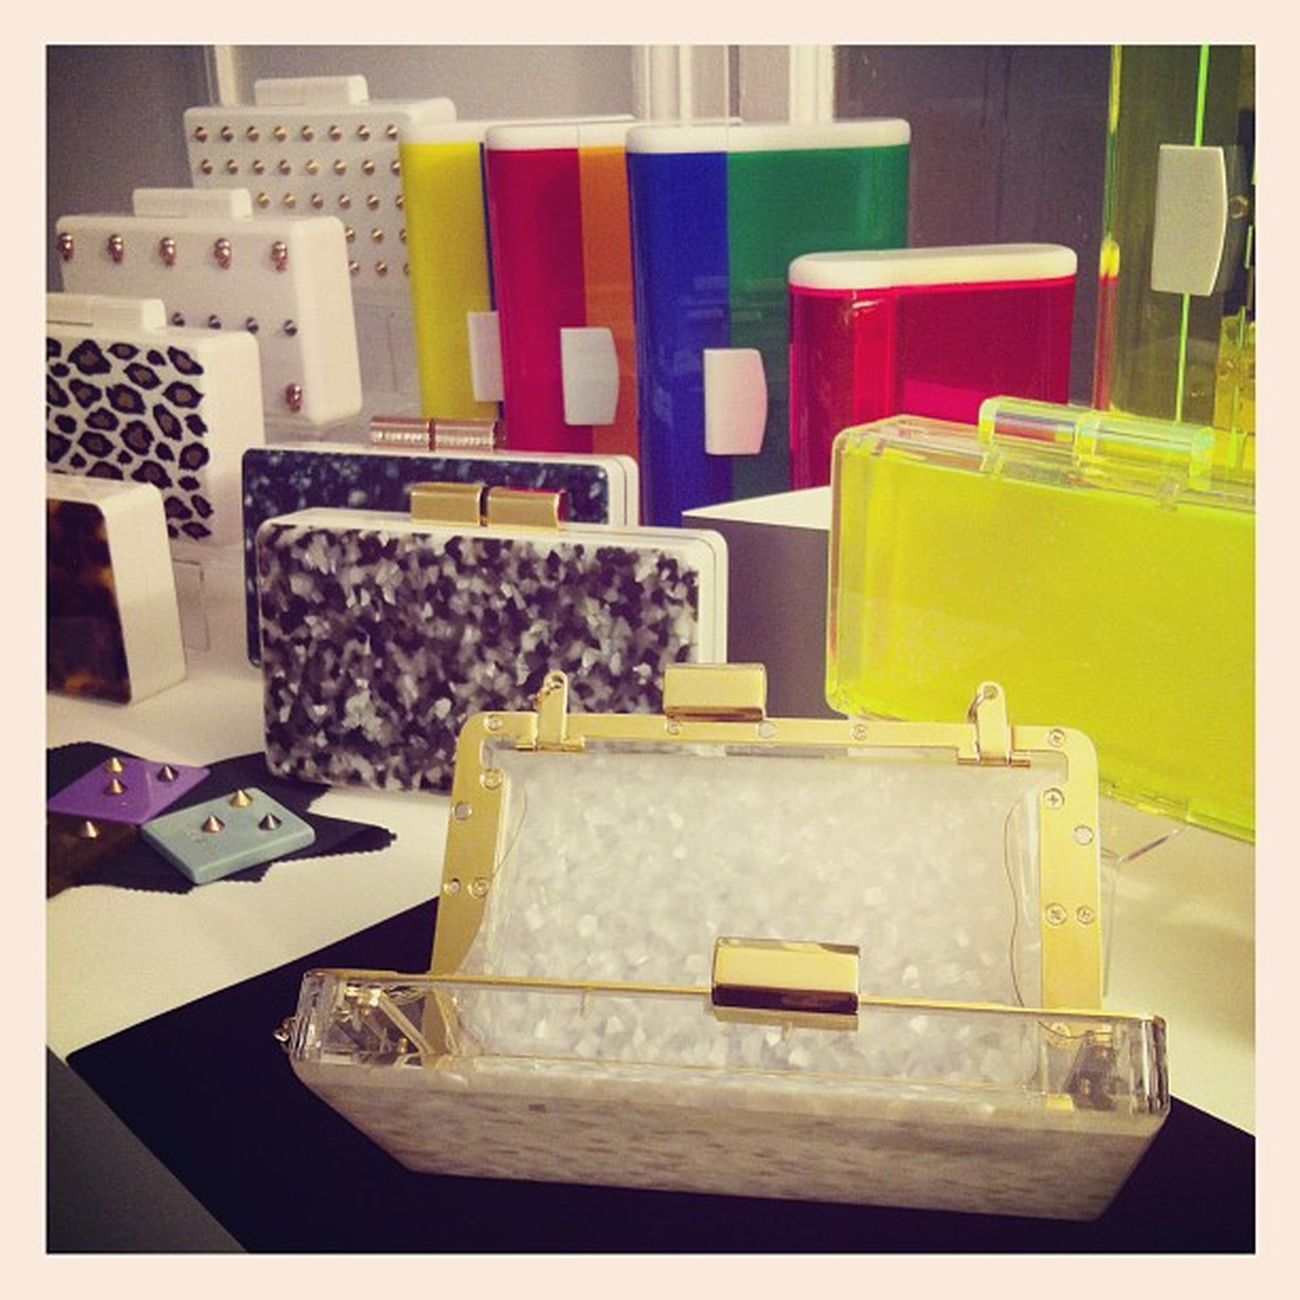 Uraniagazelli Lucite Perspex Plexiglass clear neon fluo bags clutches minaudière minaudiere presenting at valerydemure paris showroom ss2013 pfw